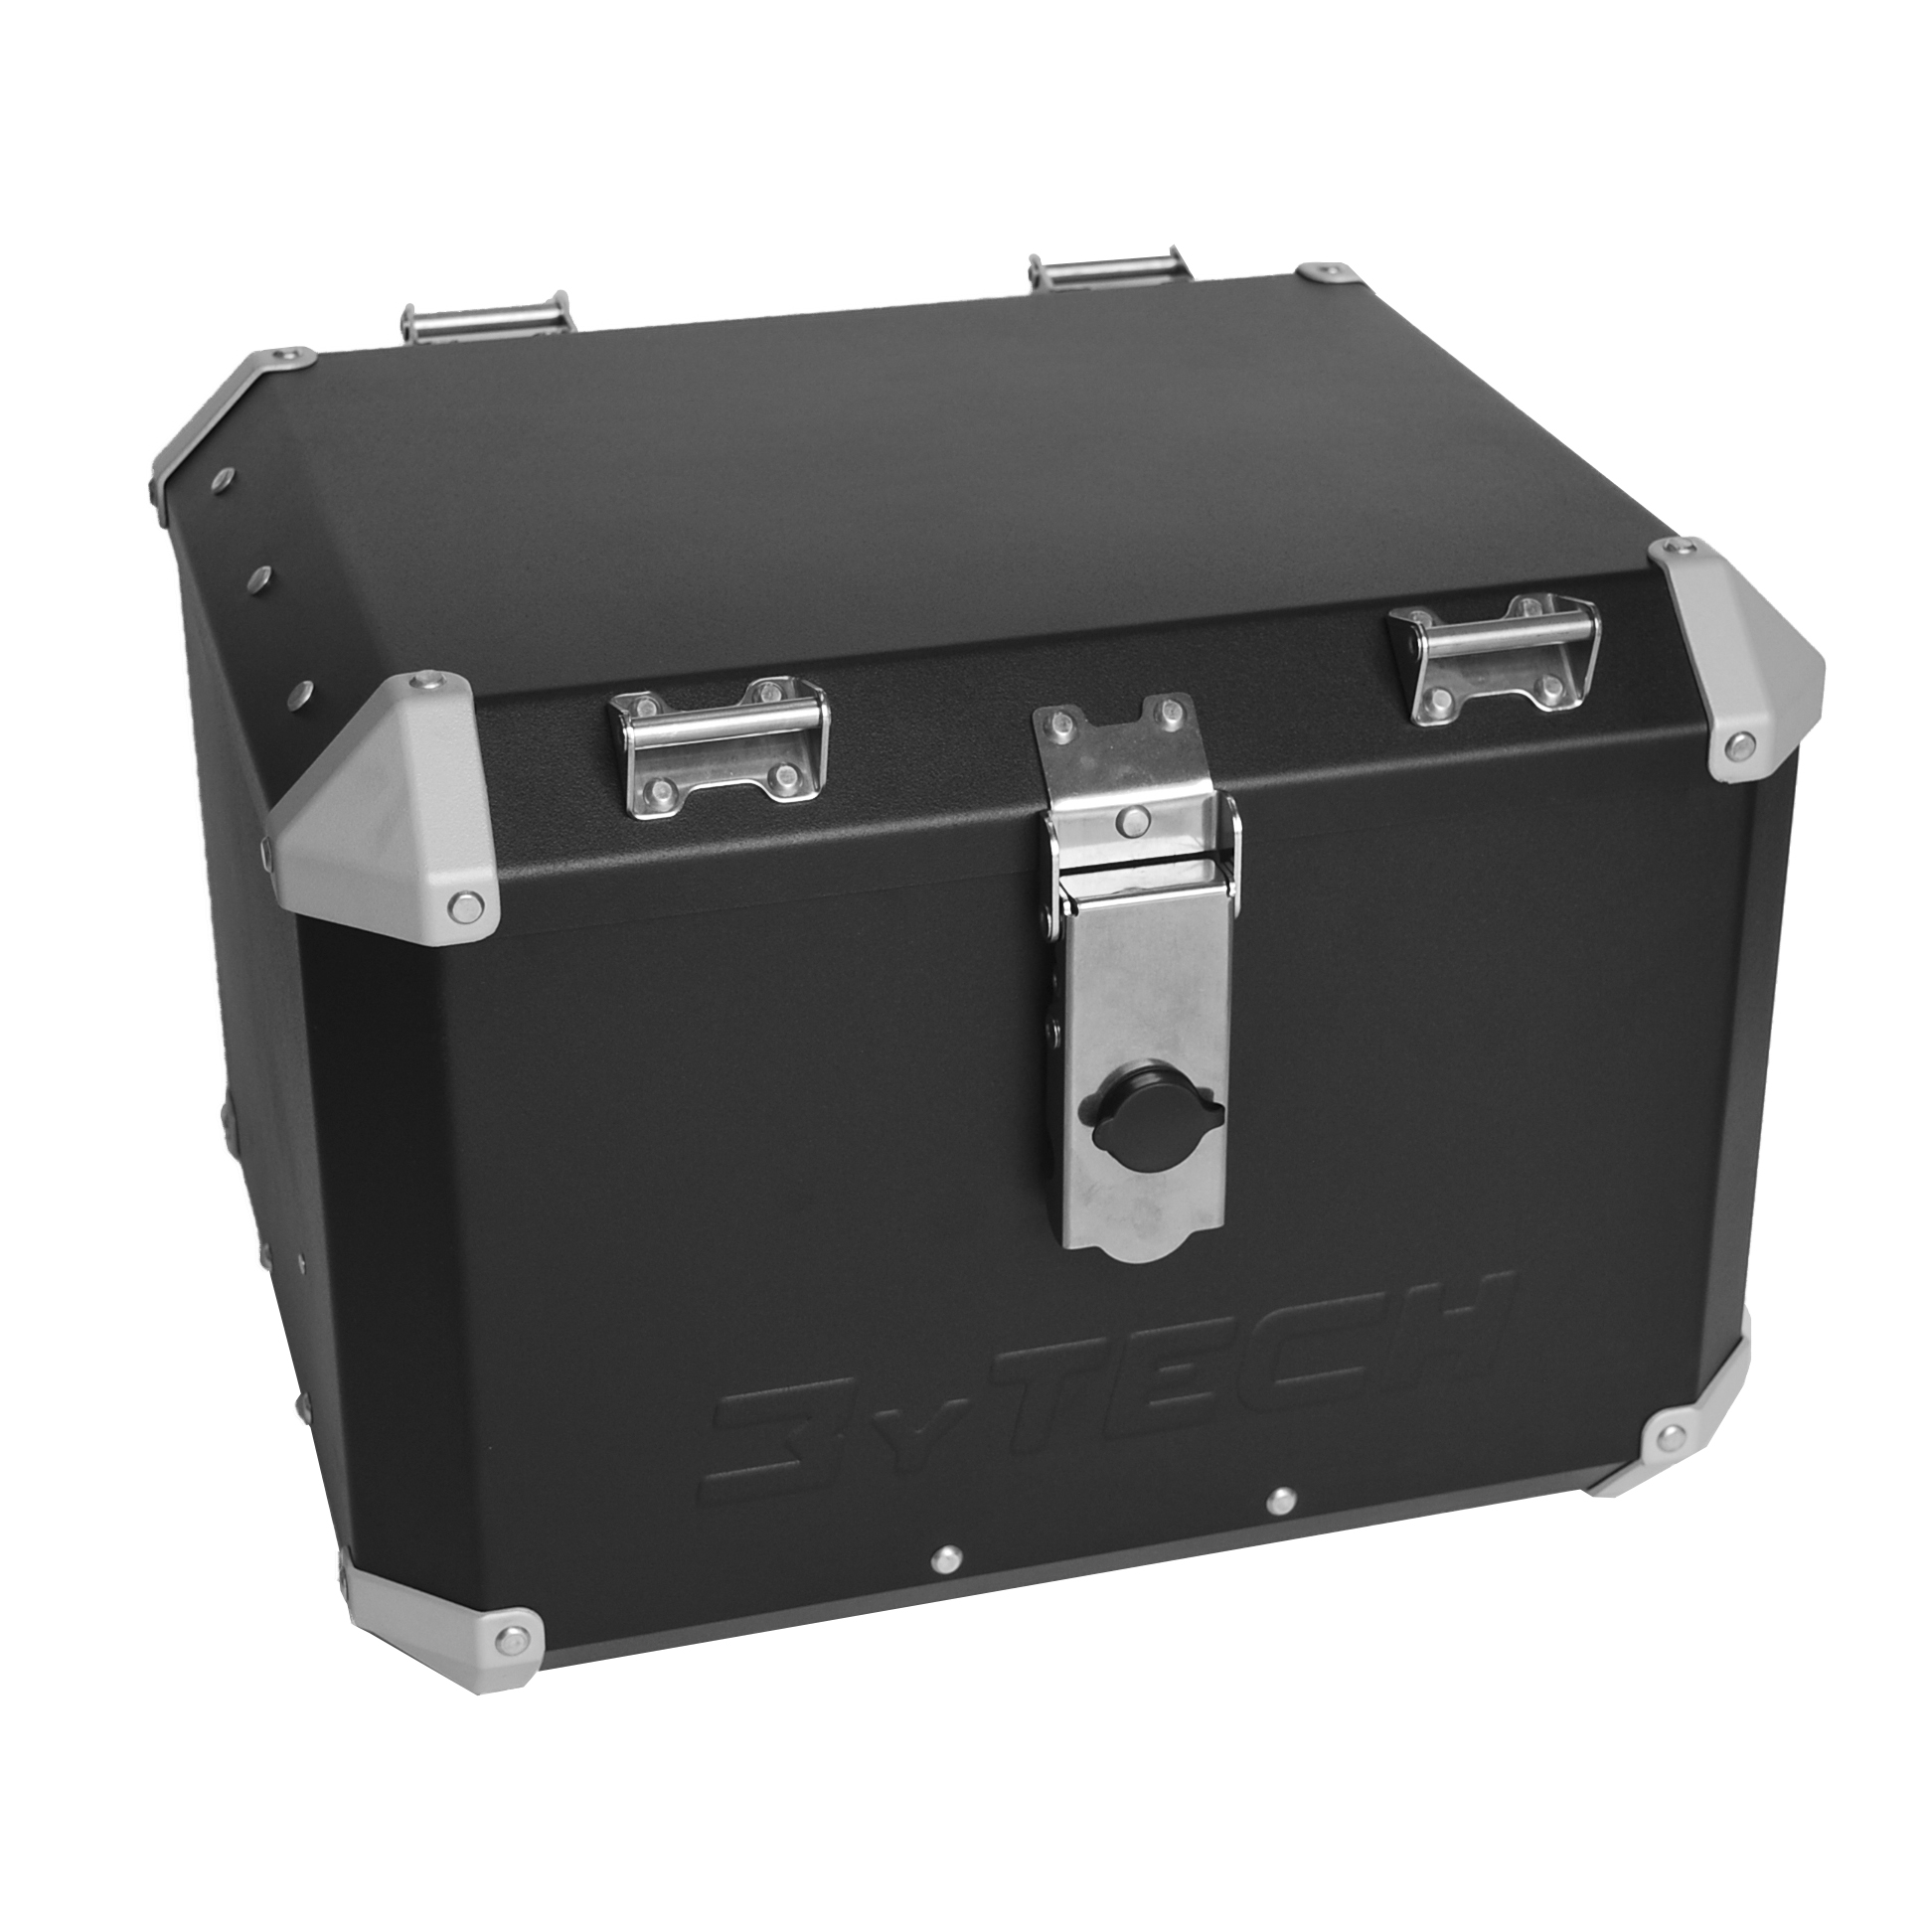 Mytech TOP CASE 41 LITER WITH FRONT OPENING -Black